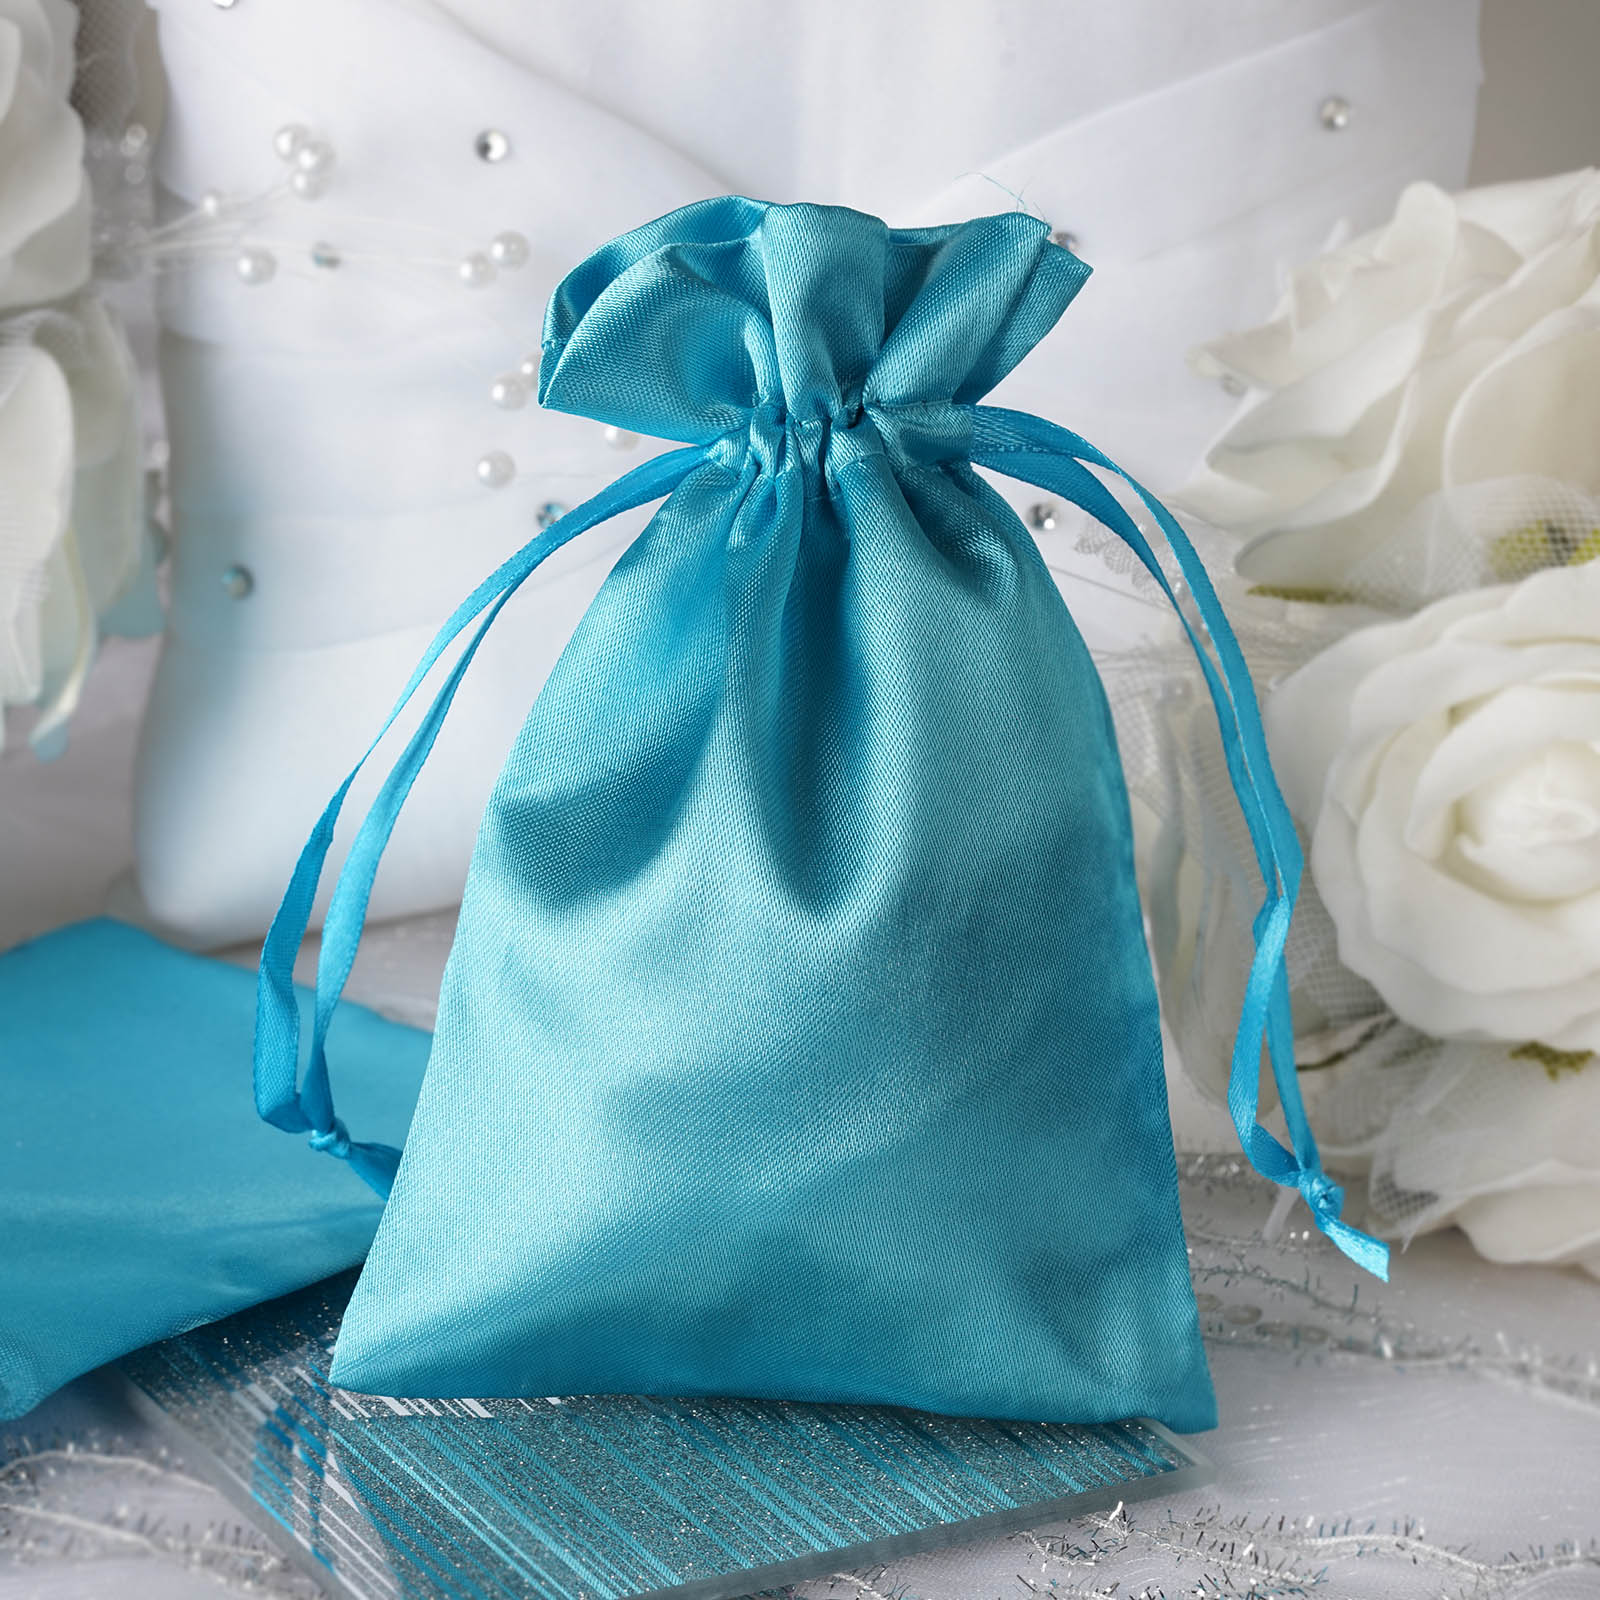 "Wedding Favor Gift Bags: 60 Pcs 4x5"" SATIN FAVOR BAGS Wedding Party Reception Gift"